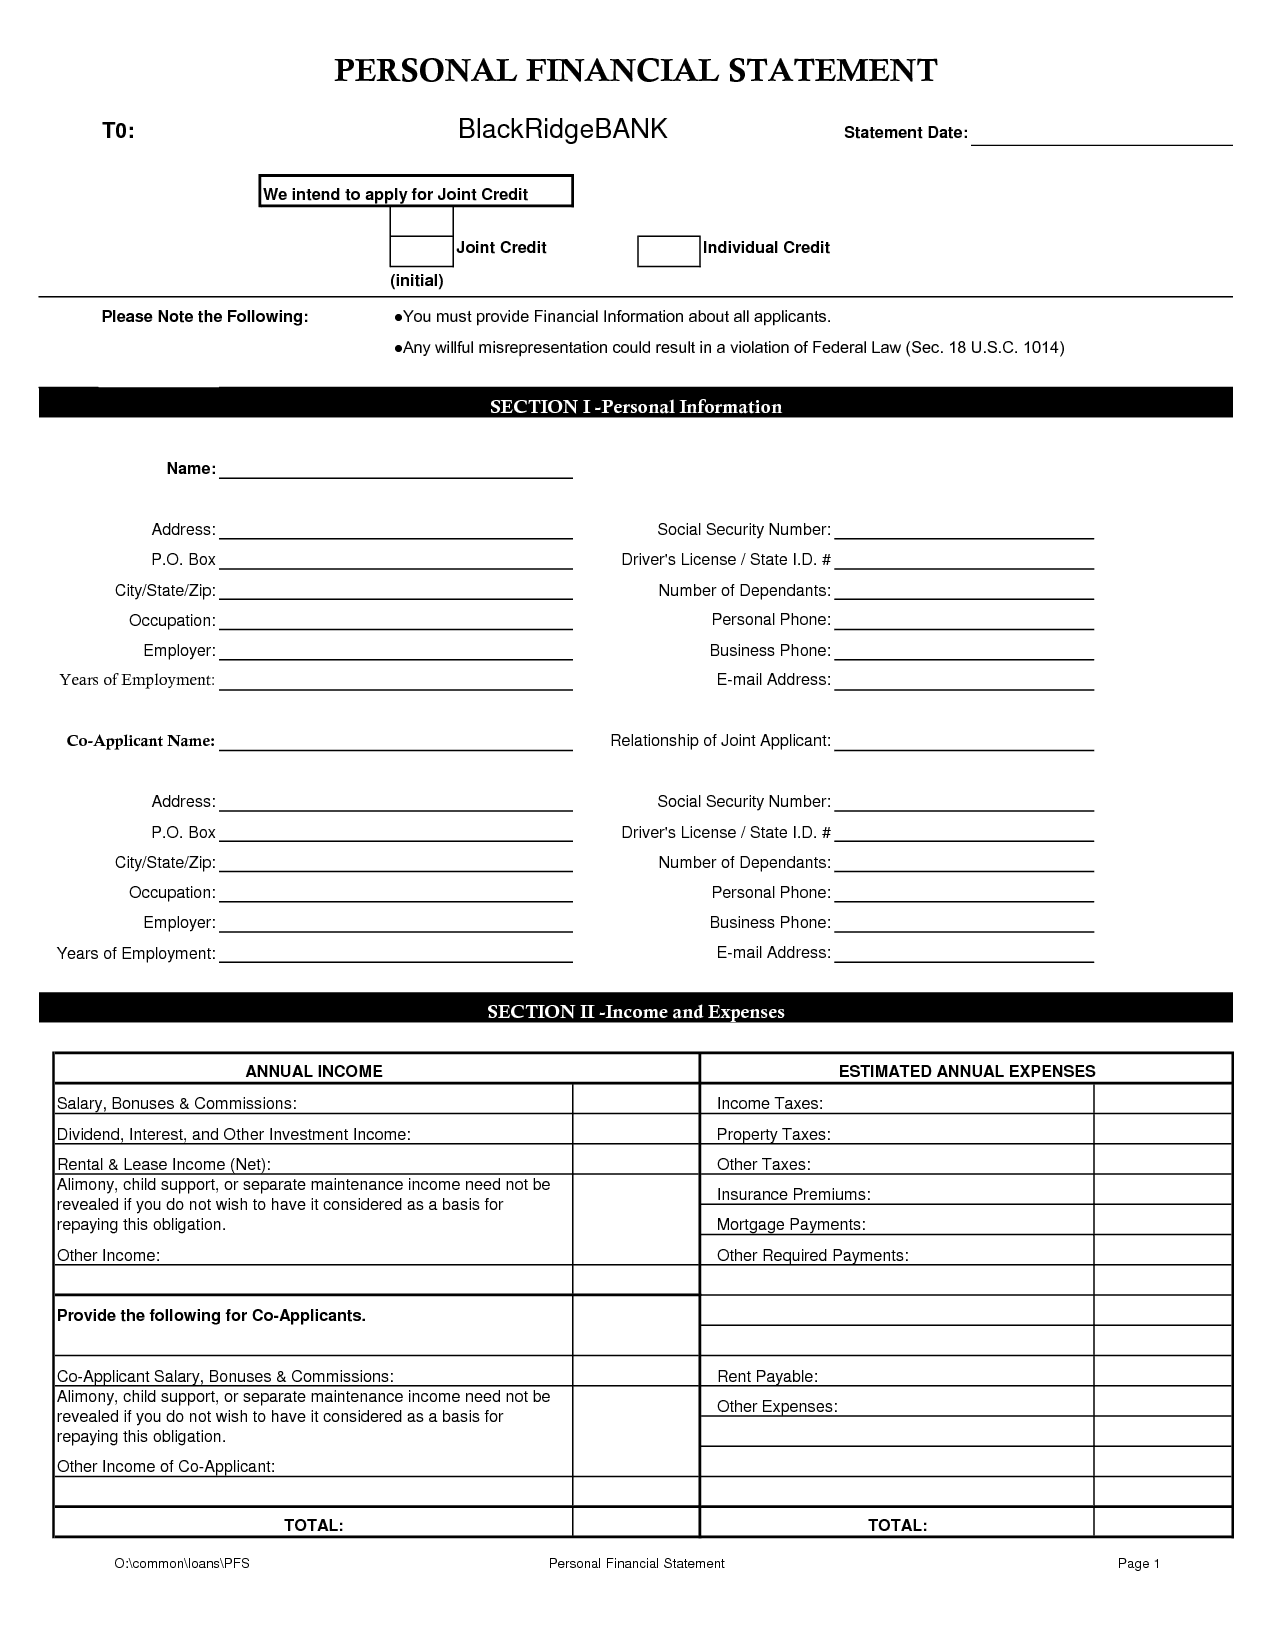 Sample Personal Financial Statement Template Word And Examples Of Personal Financial Mission Statements